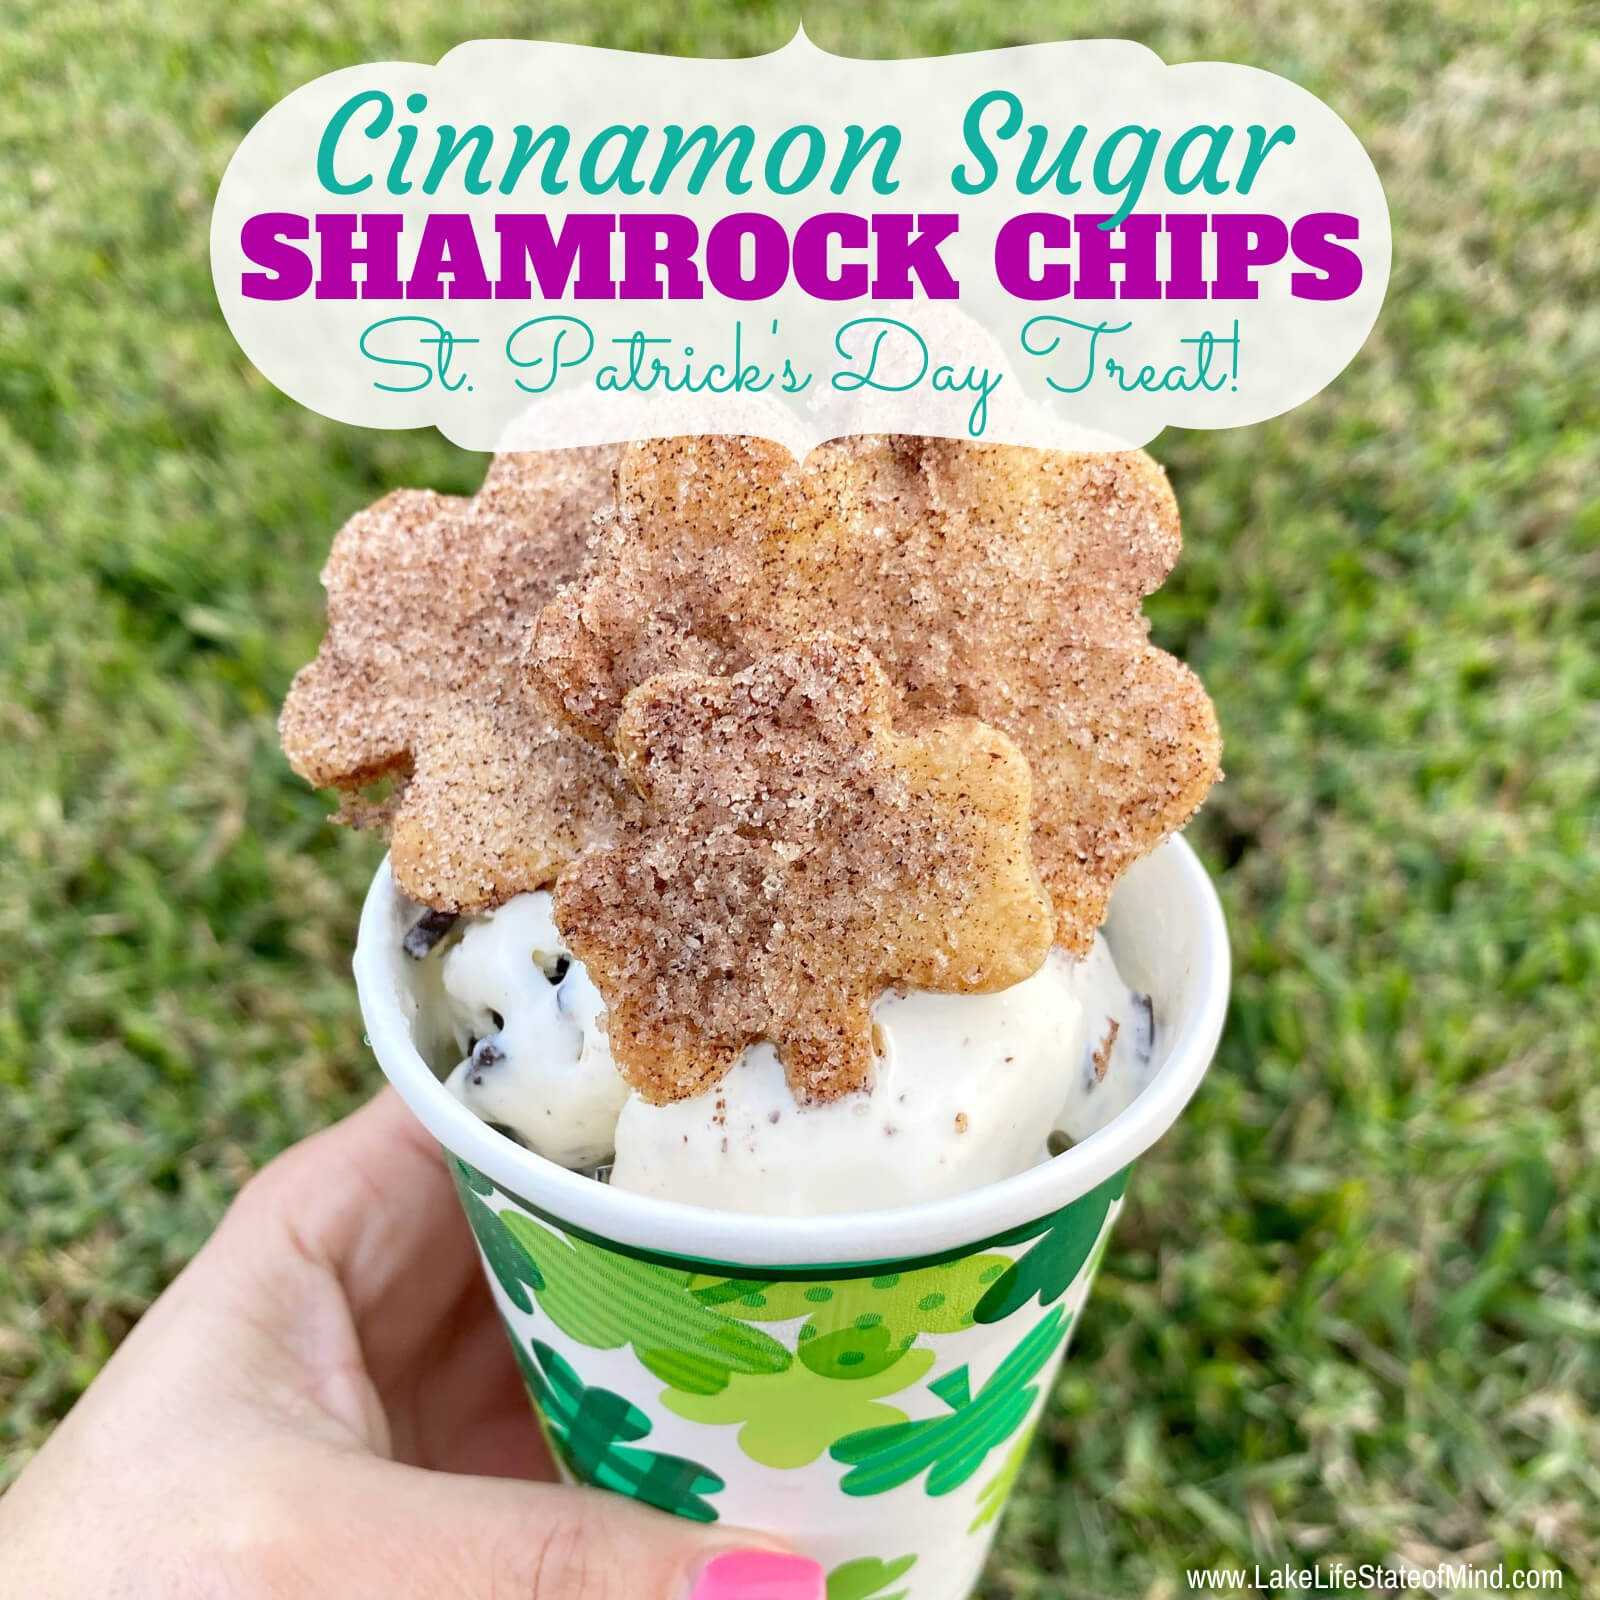 Shamrock Cinnamon Sugar Chips